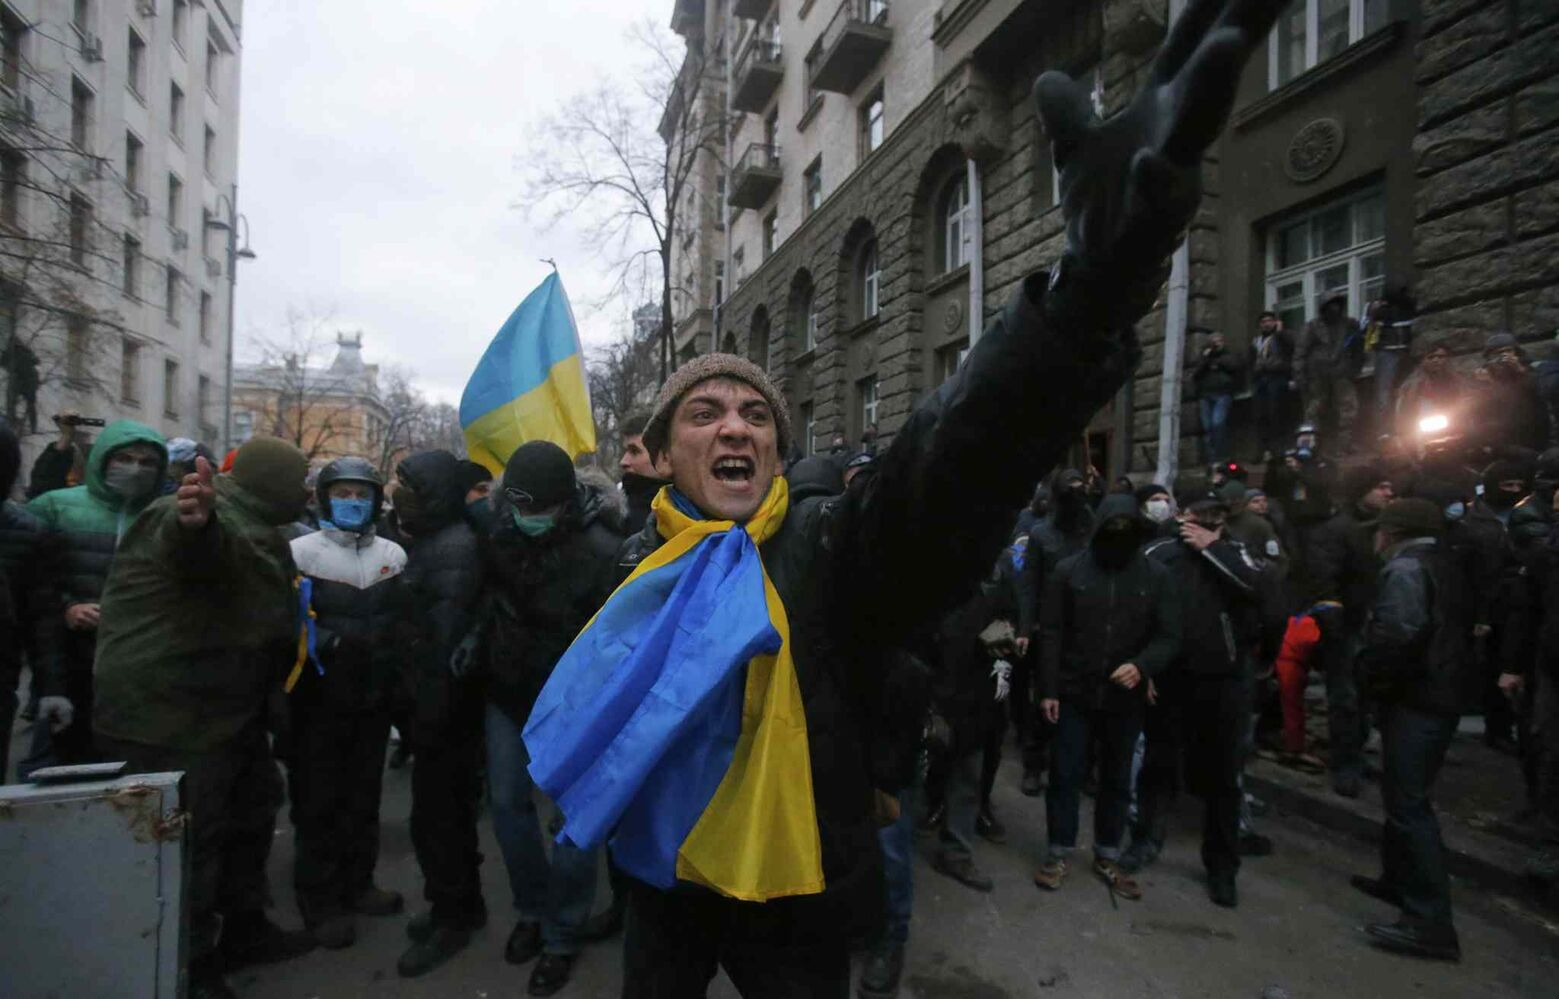 Protesters shout as they clash with police outside of the presidential administration building in downtown Kiev, Ukraine, on Sunday. More than 100,000 demonstrators chased away police to rally in the center of Ukraine's capital on Sunday.